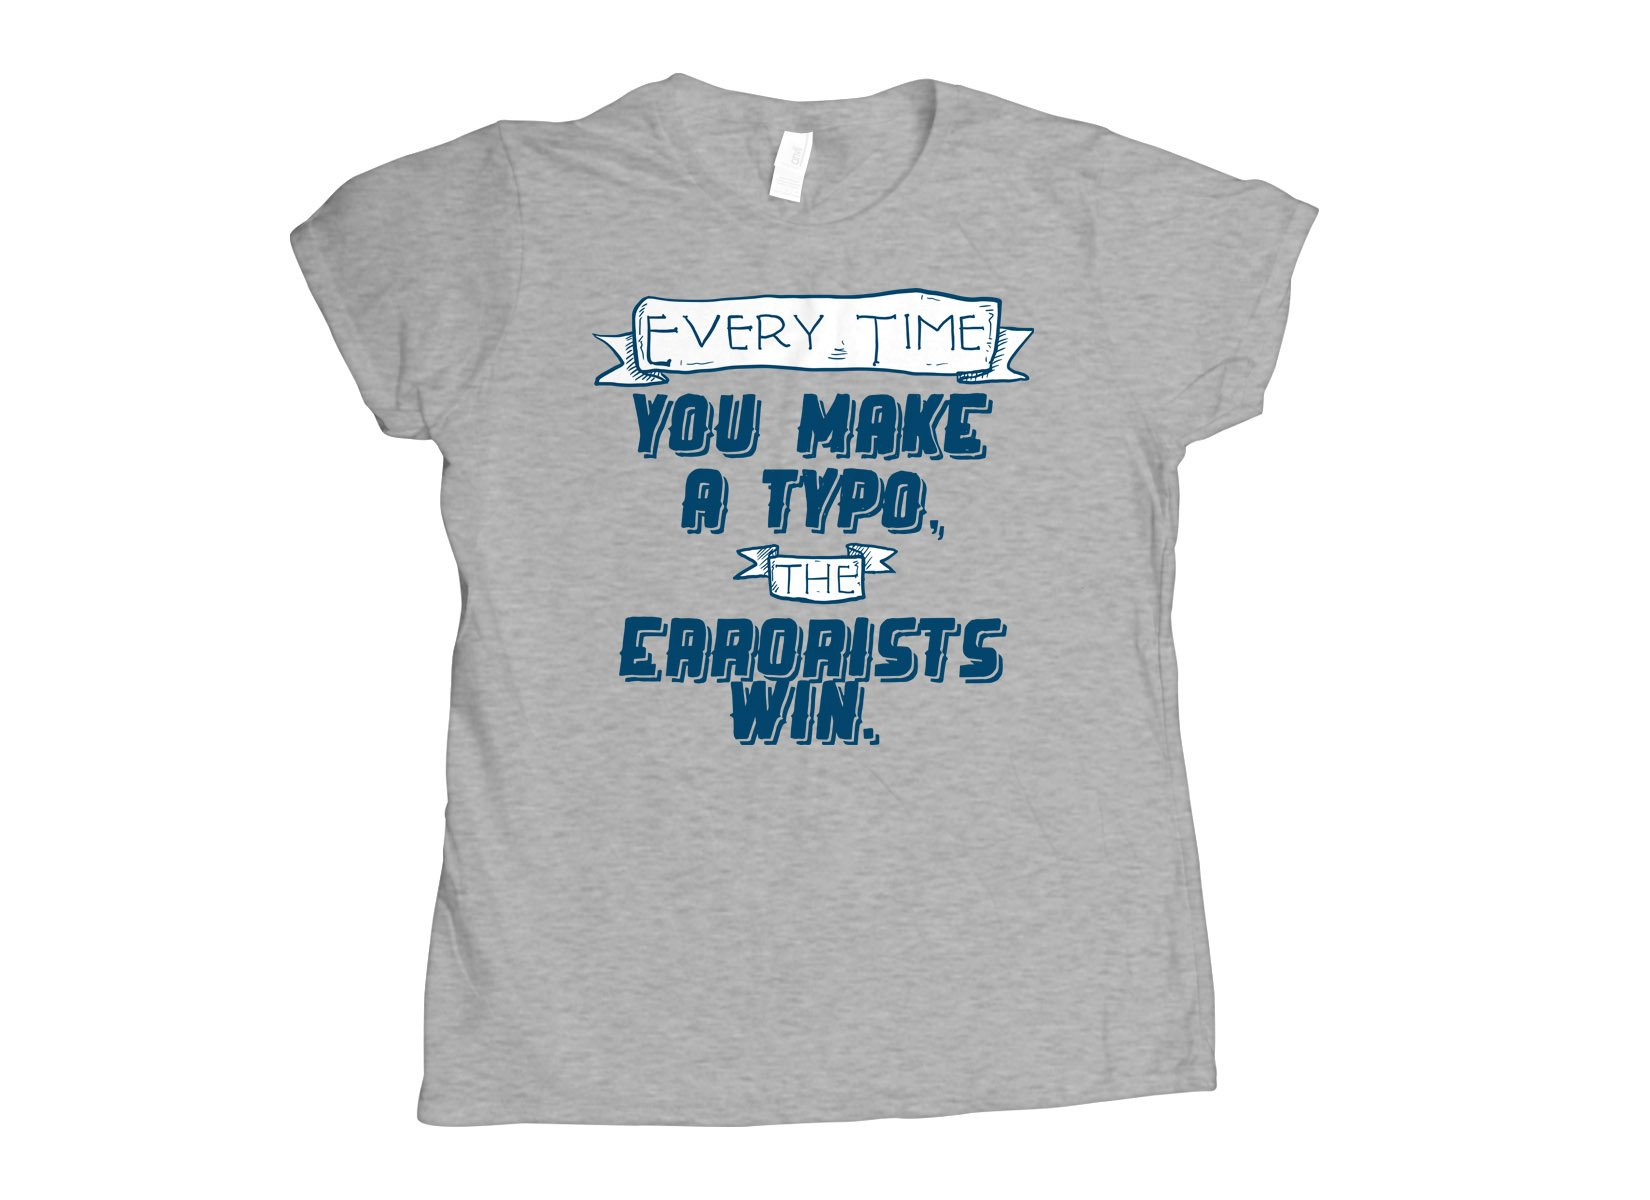 The Errorists Win on Womens T-Shirt